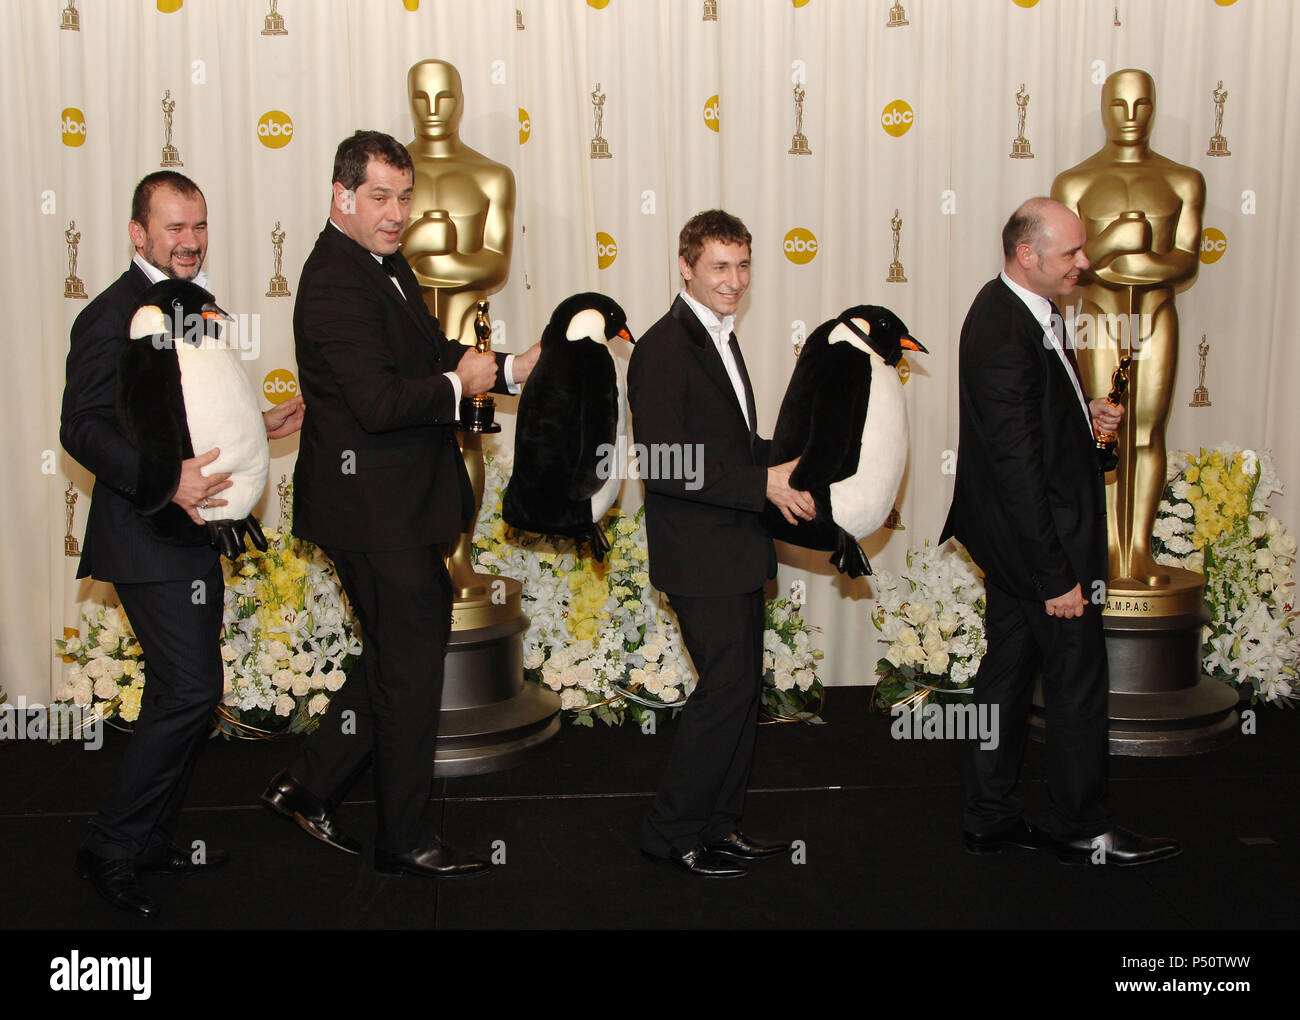 Best Documentary Winners March Of The Penguins In Press Room At 78th